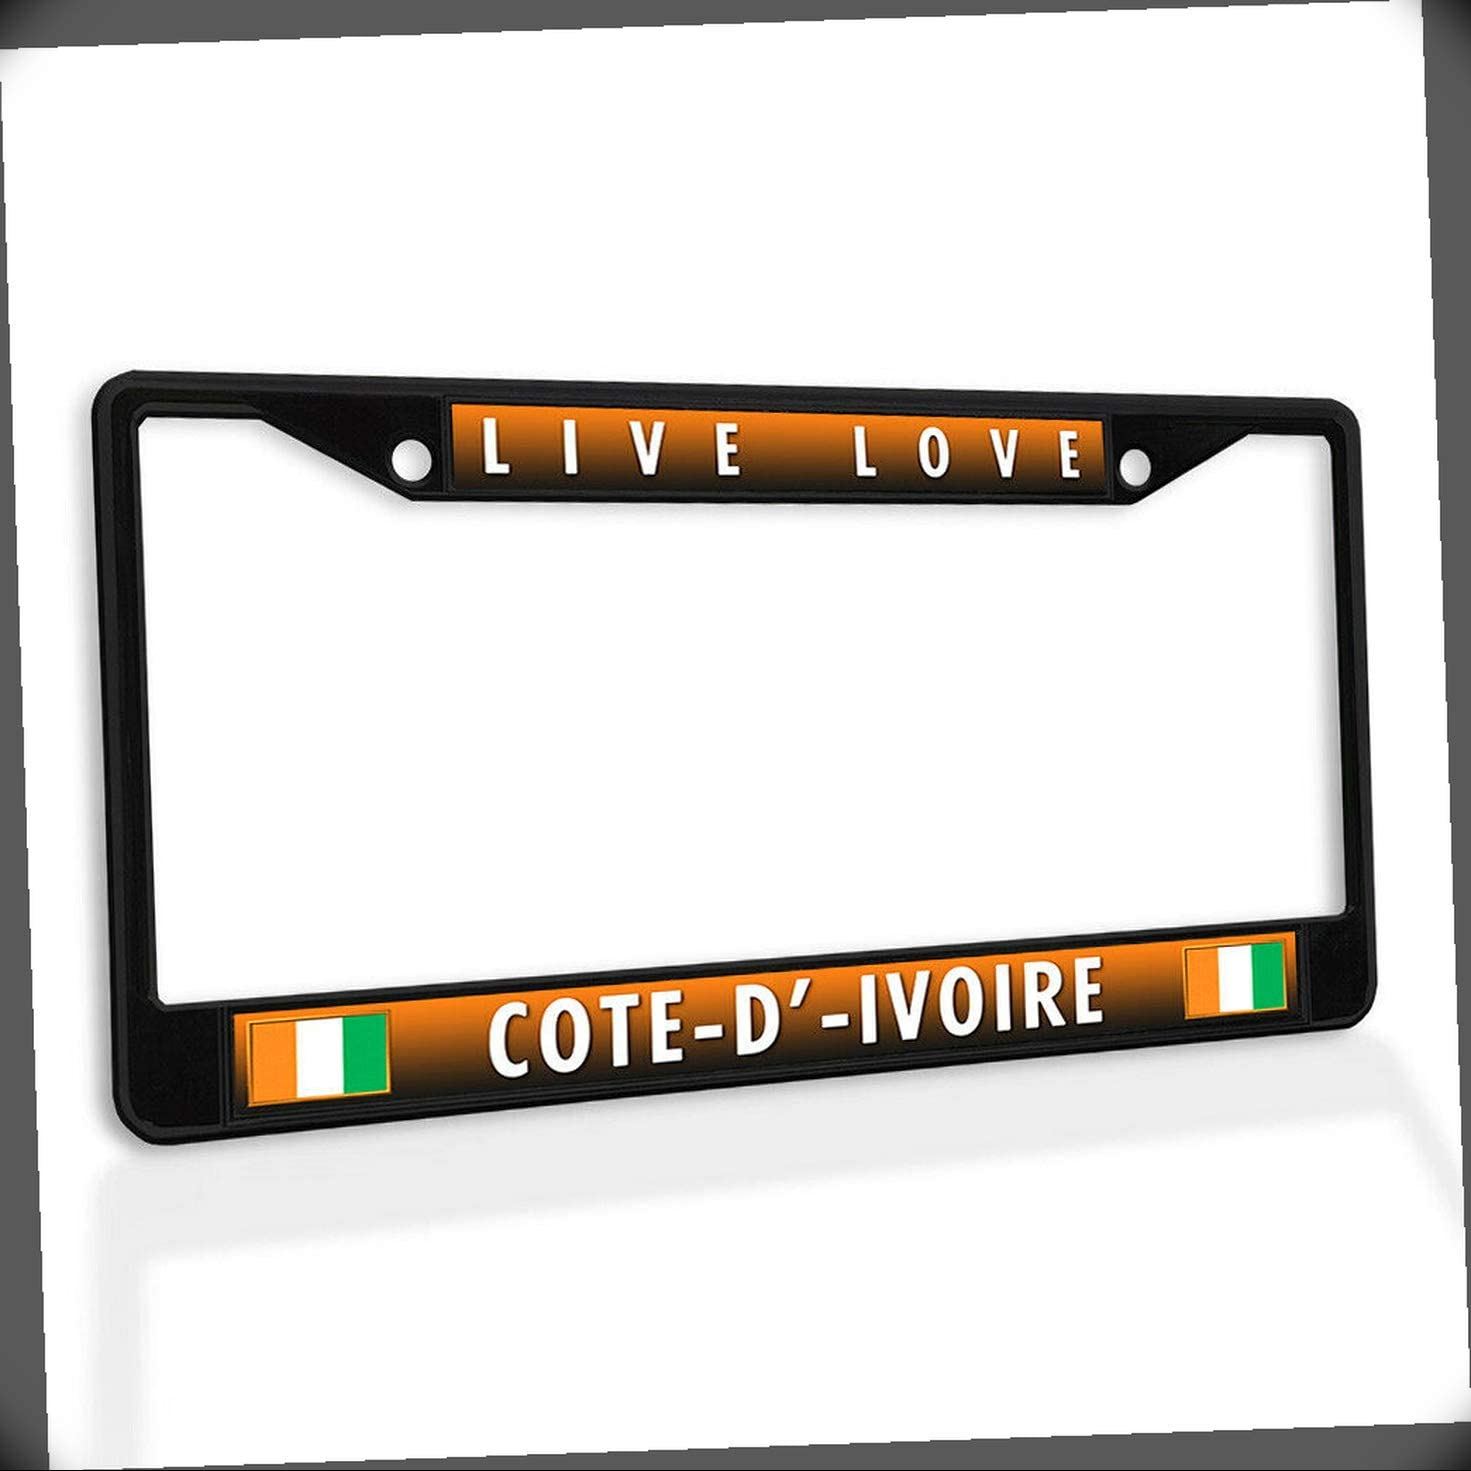 New License Plate Frame Limited 100% quality warranty! price sale Live Love Metal Cote-D'-Ivoire Car Inser